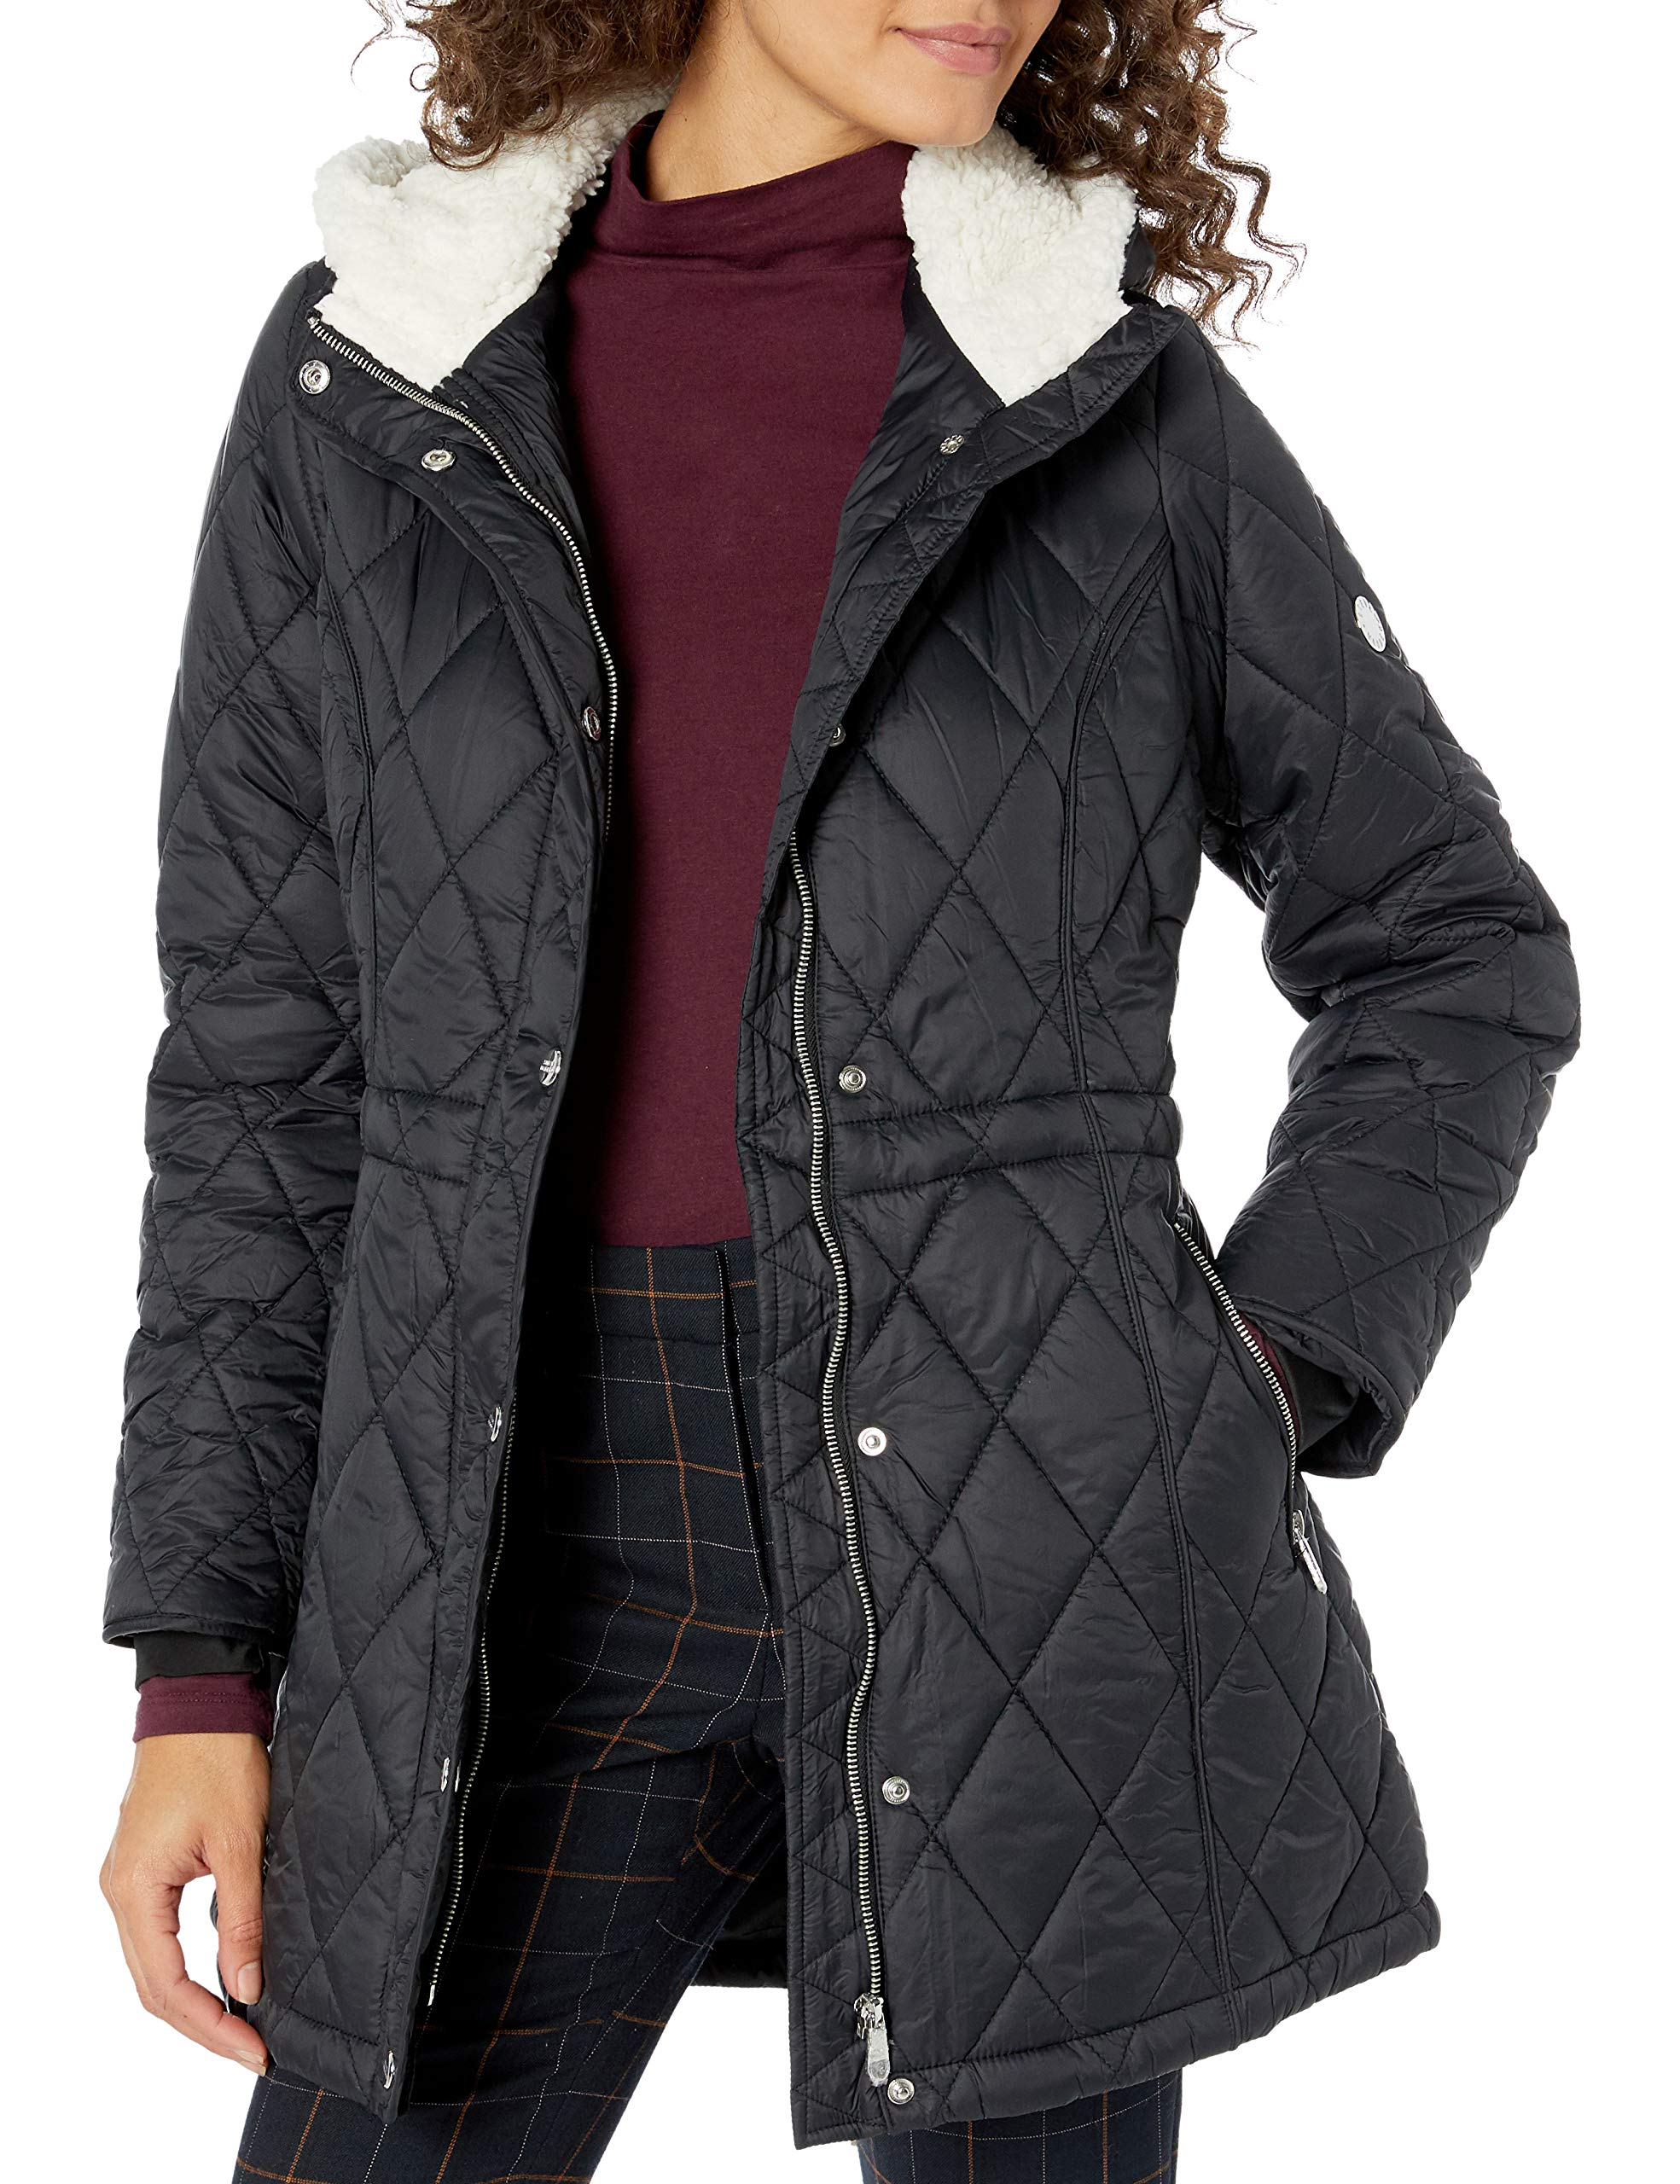 Steve Madden Women's Quilted Anorak with Hood, Nylon with Sherpa Black, L by Steve Madden